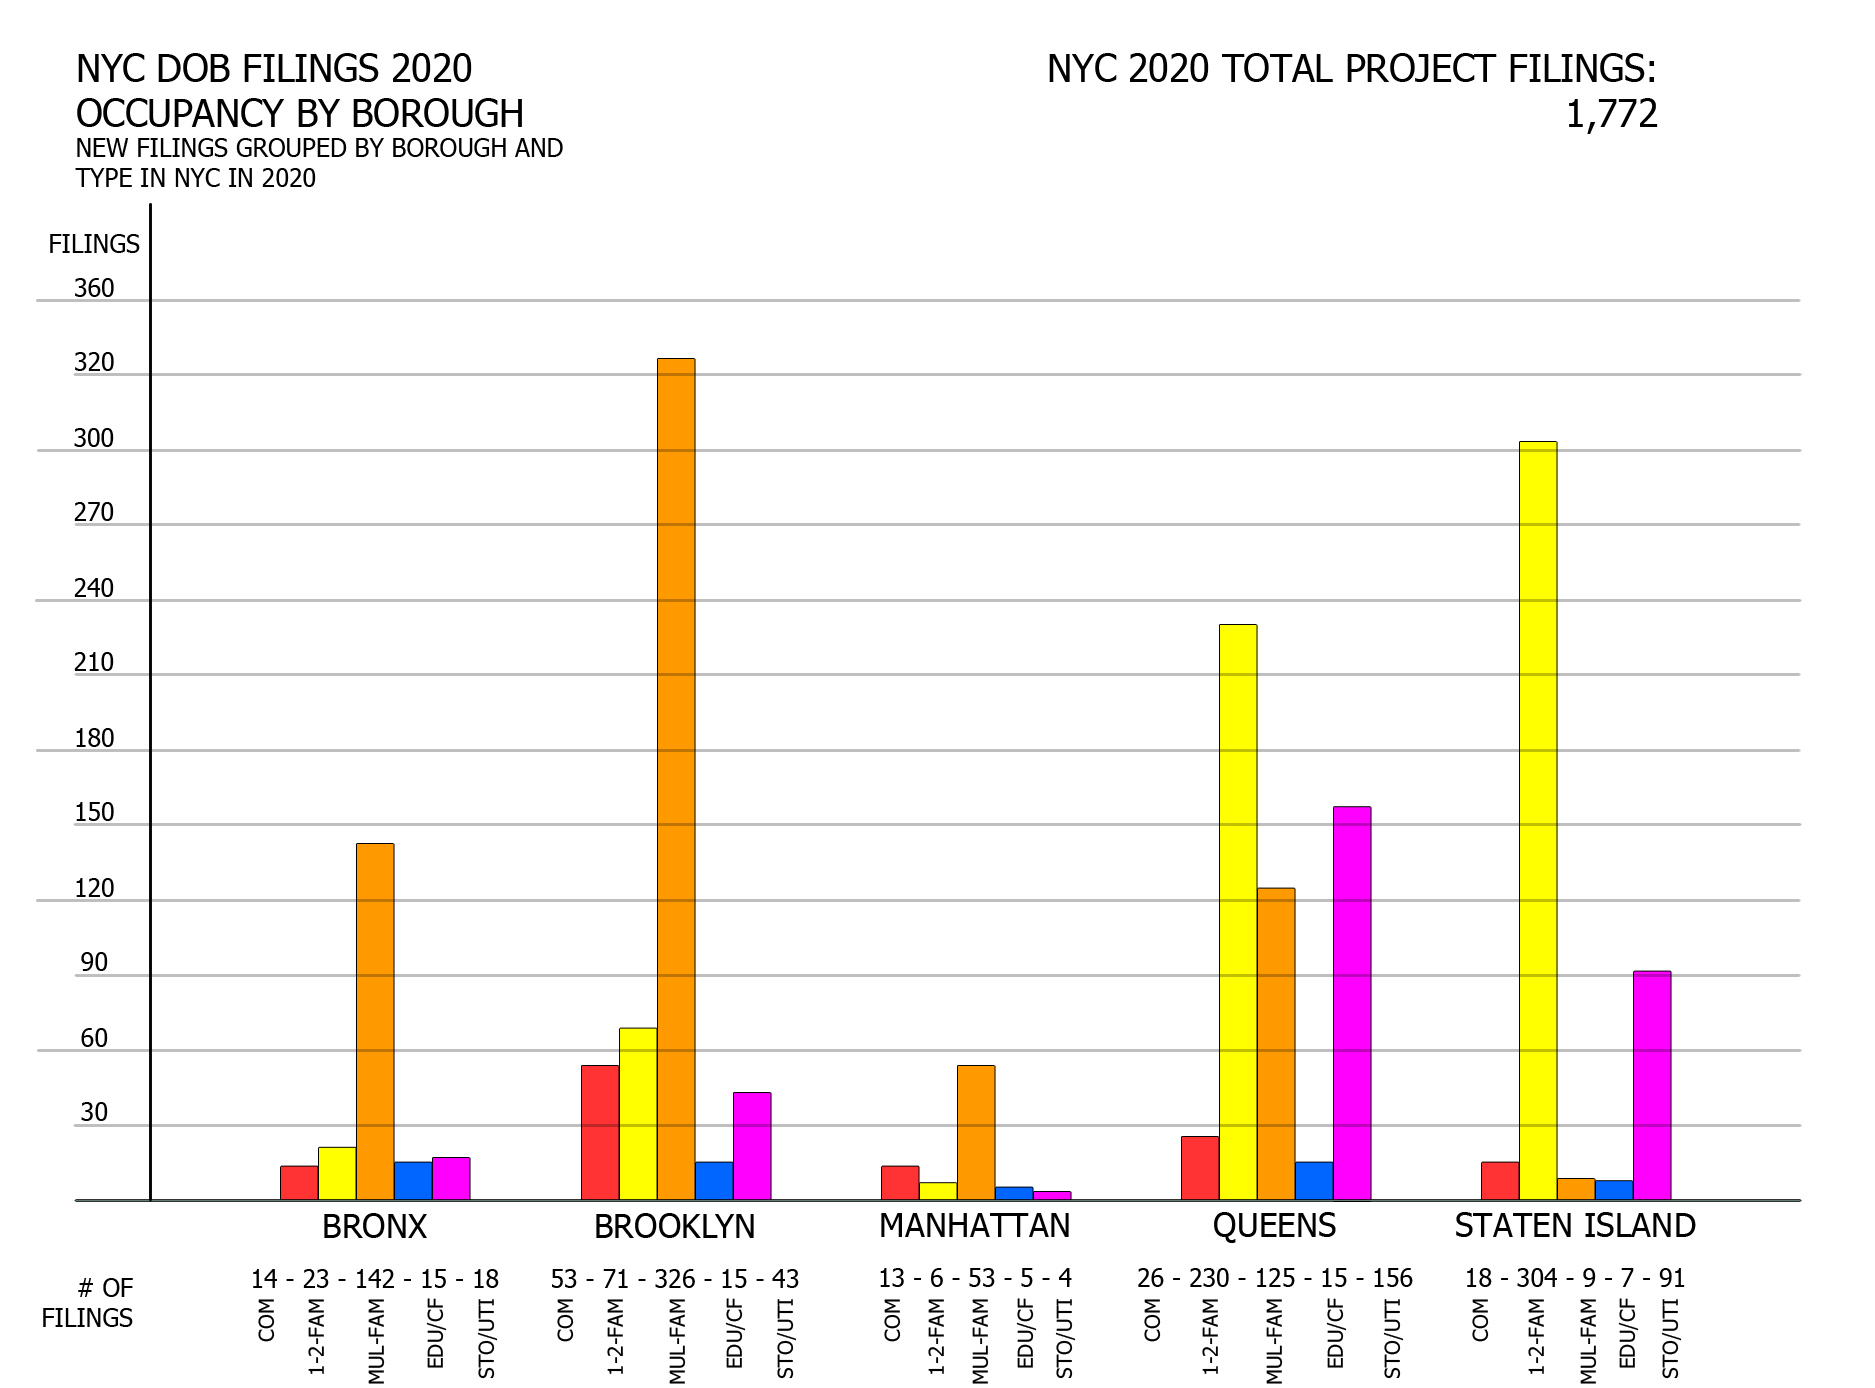 NYC DOB filings in 2020 by borough by occupancy. Credit: Vitali Ogorodnikov